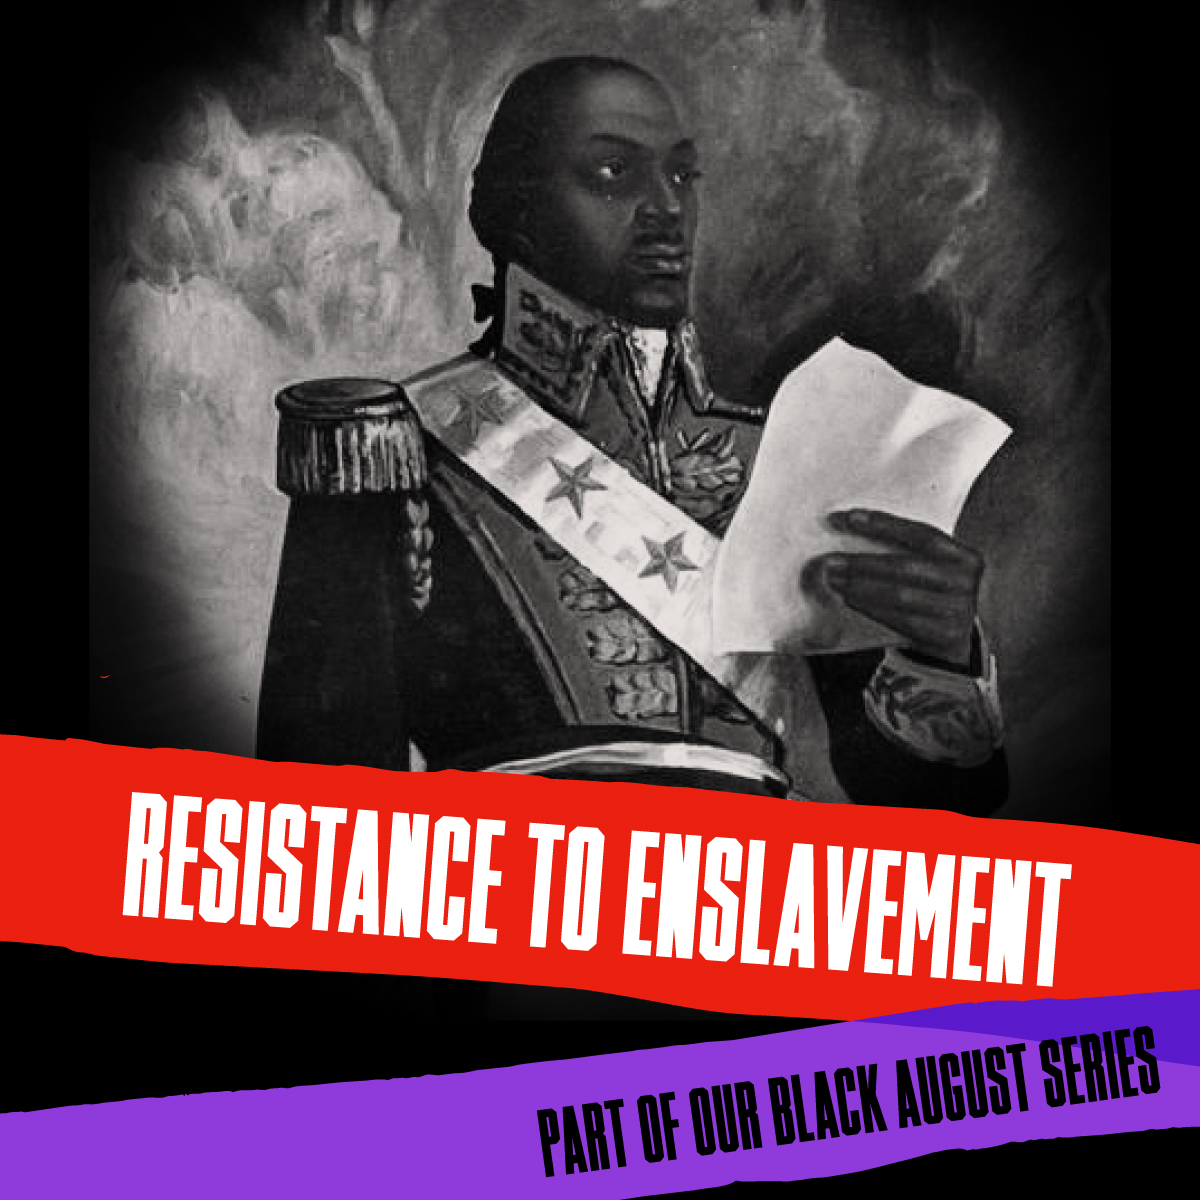 General Toussaint Louverture, leader of the Haitian Revolution, with the text 'Resistance to Enslavement' and 'Part of our Black August Series.''